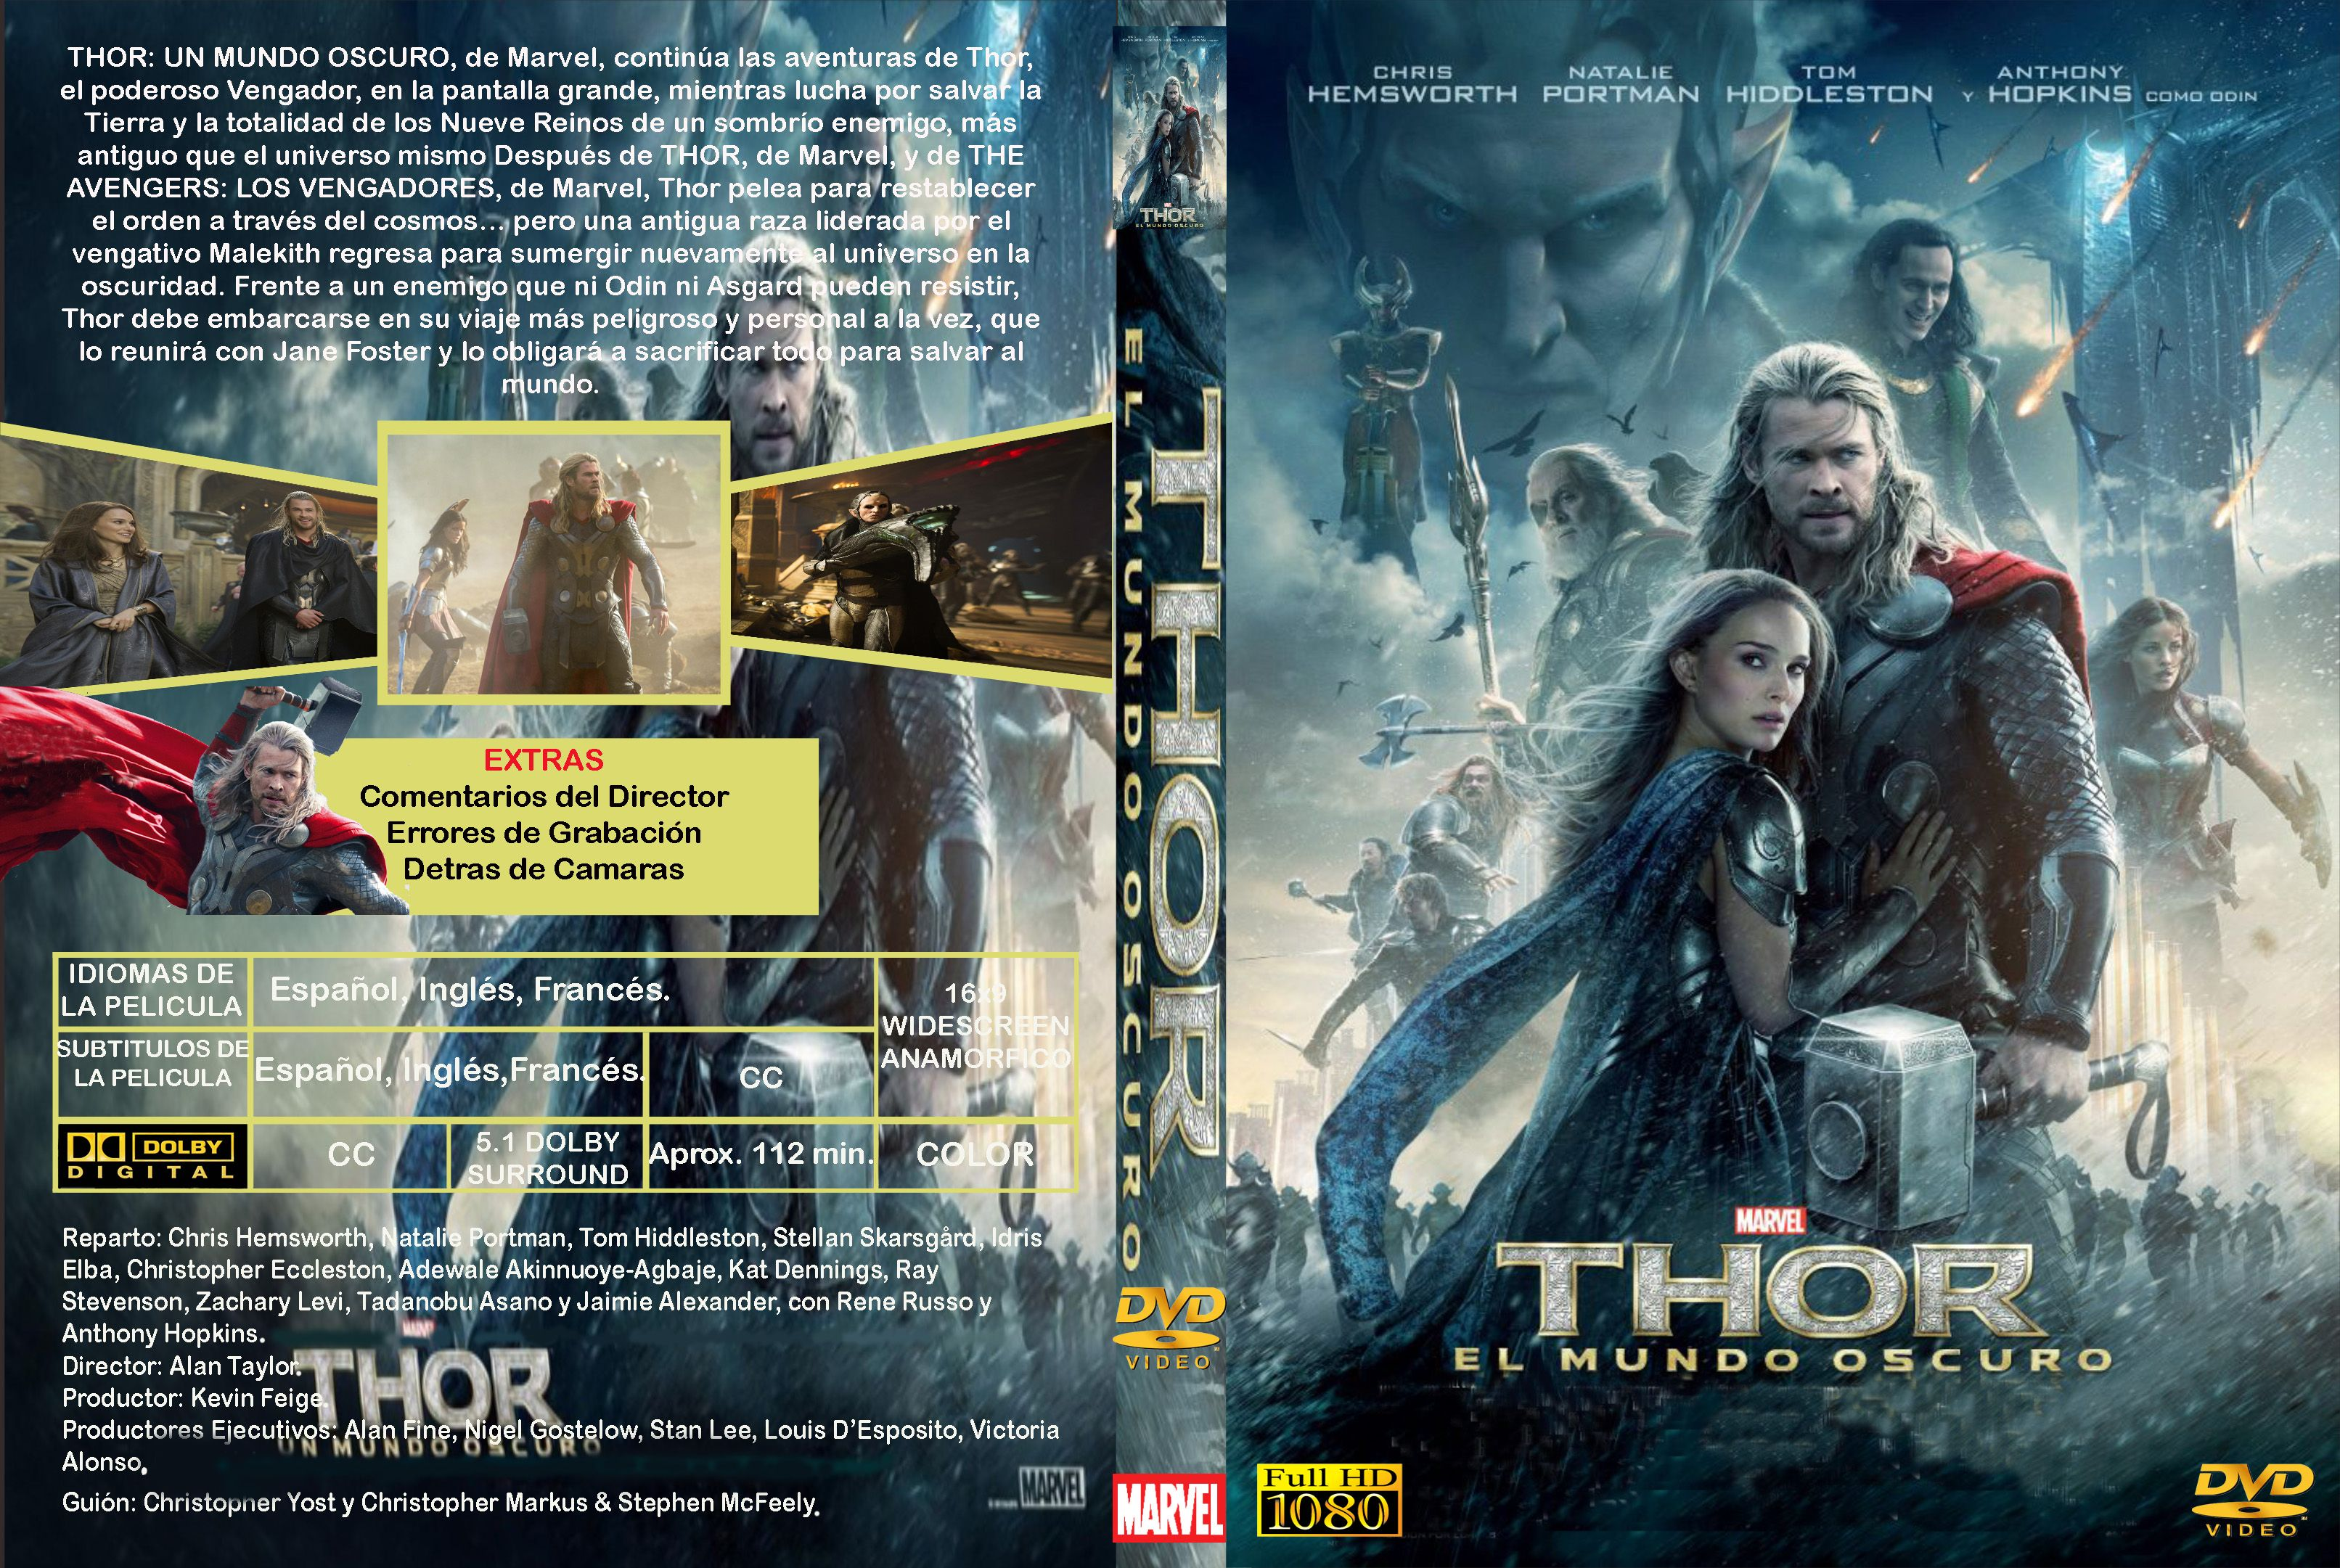 Thor El Mundo Oscuro Custom V2 Por Oscarjd7 Dvd furthermore New May 2015 Movies And Tv Streaming On  flix together with Fruitvale station trailer oscar grant shooting is brought to the screen additionally Octavia Spencer Woman Of The Year Hasty Pudding likewise Nuevos Posters Individuales De Creed. on oscar from fruitvale